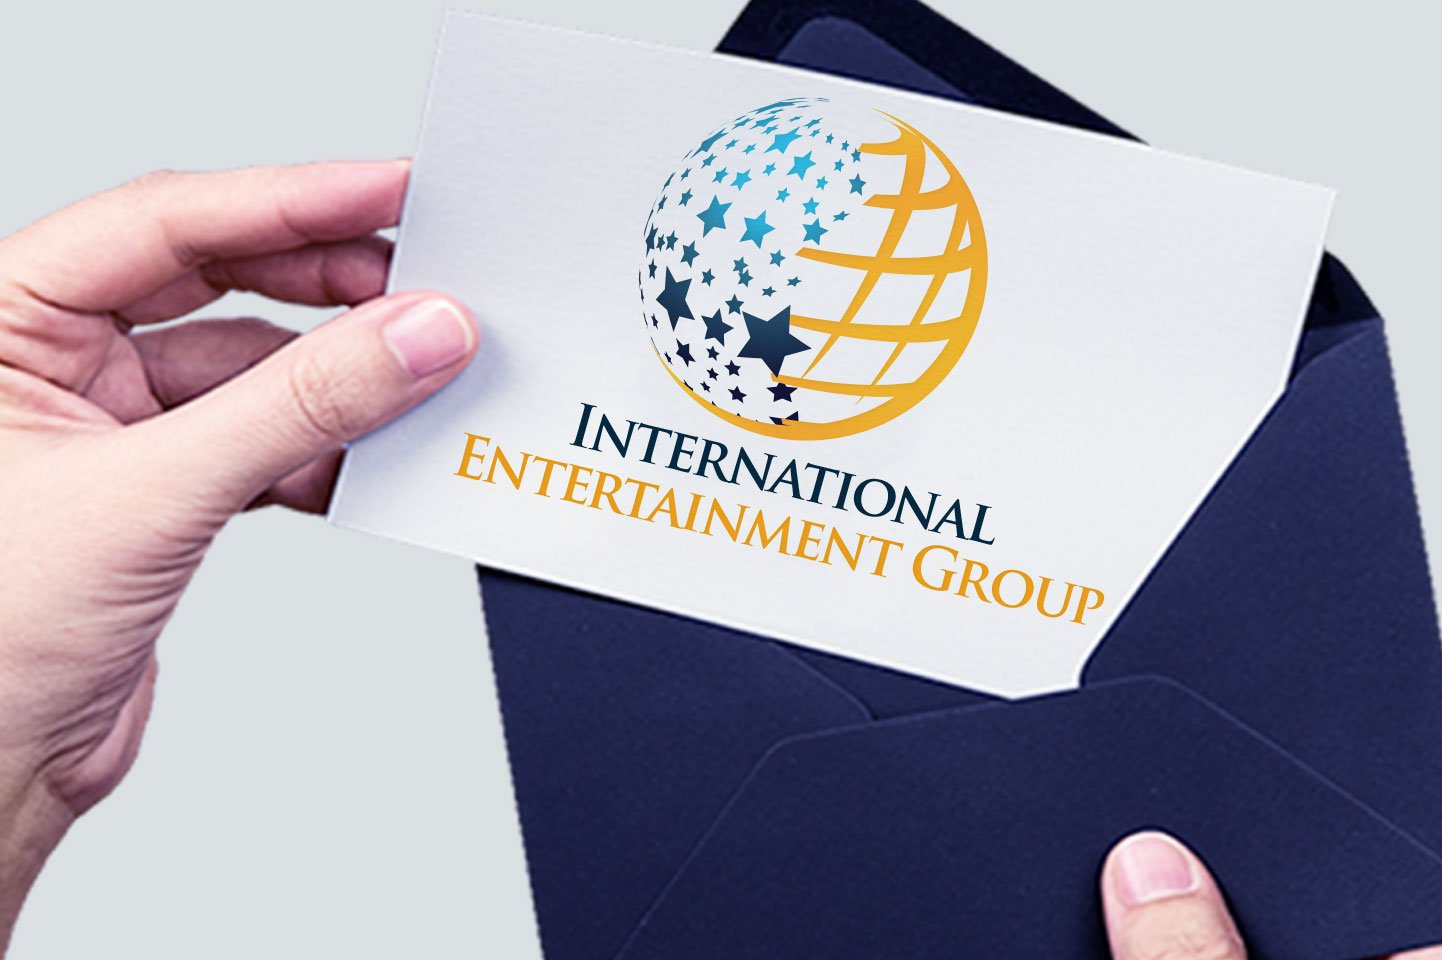 international entertainment group